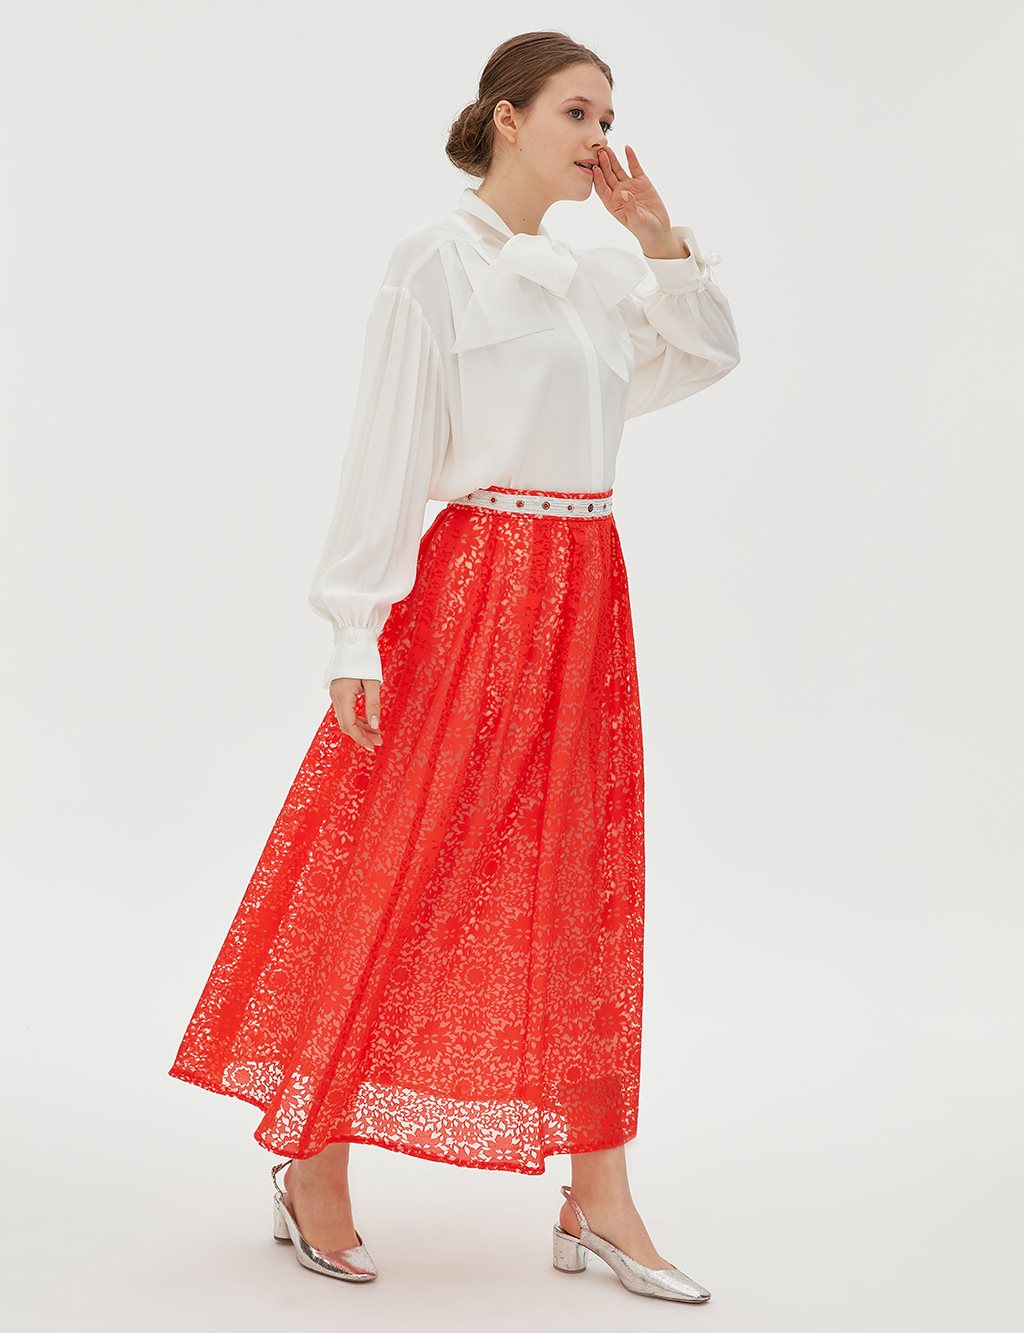 Pleated Lace Skirt B20 12080 Red